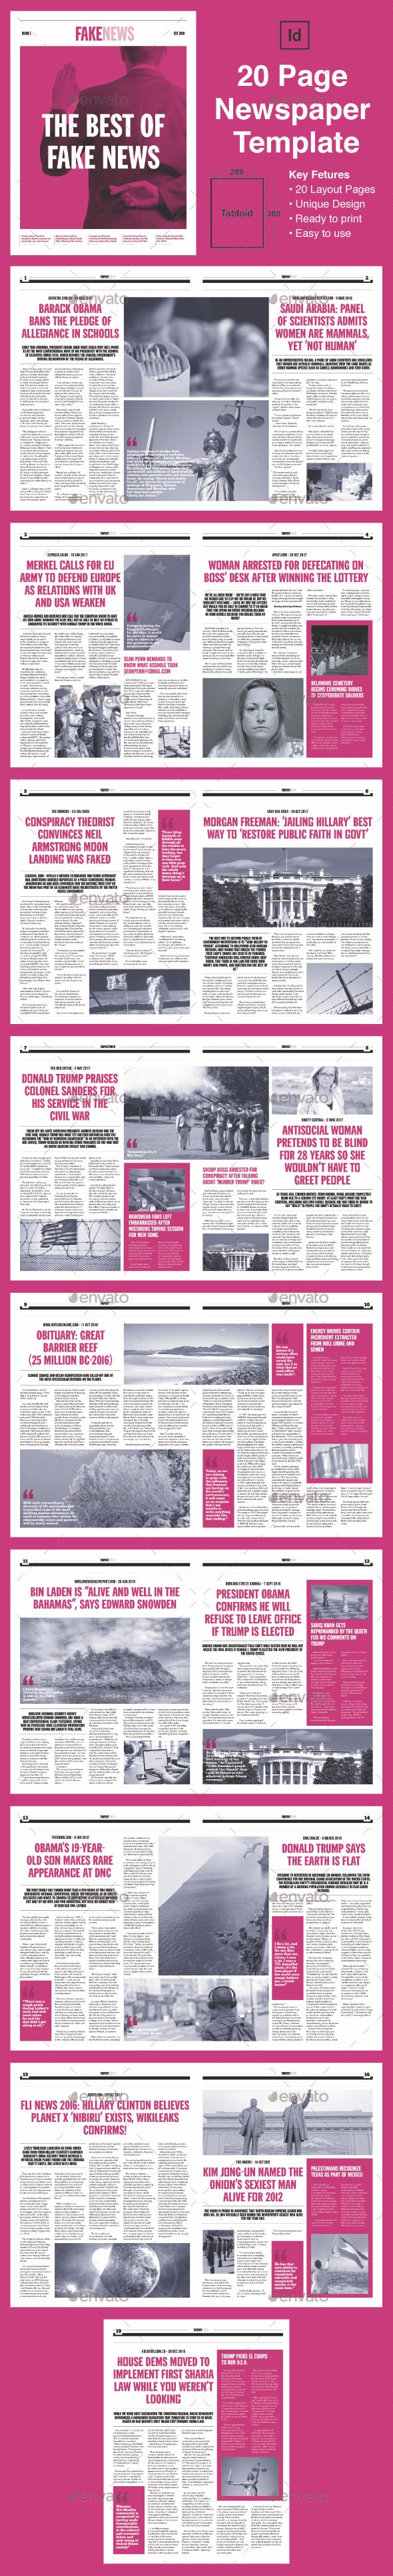 FakeNews - 20 Page Newspaper Template (Tabloid) - Newsletters Print Templates